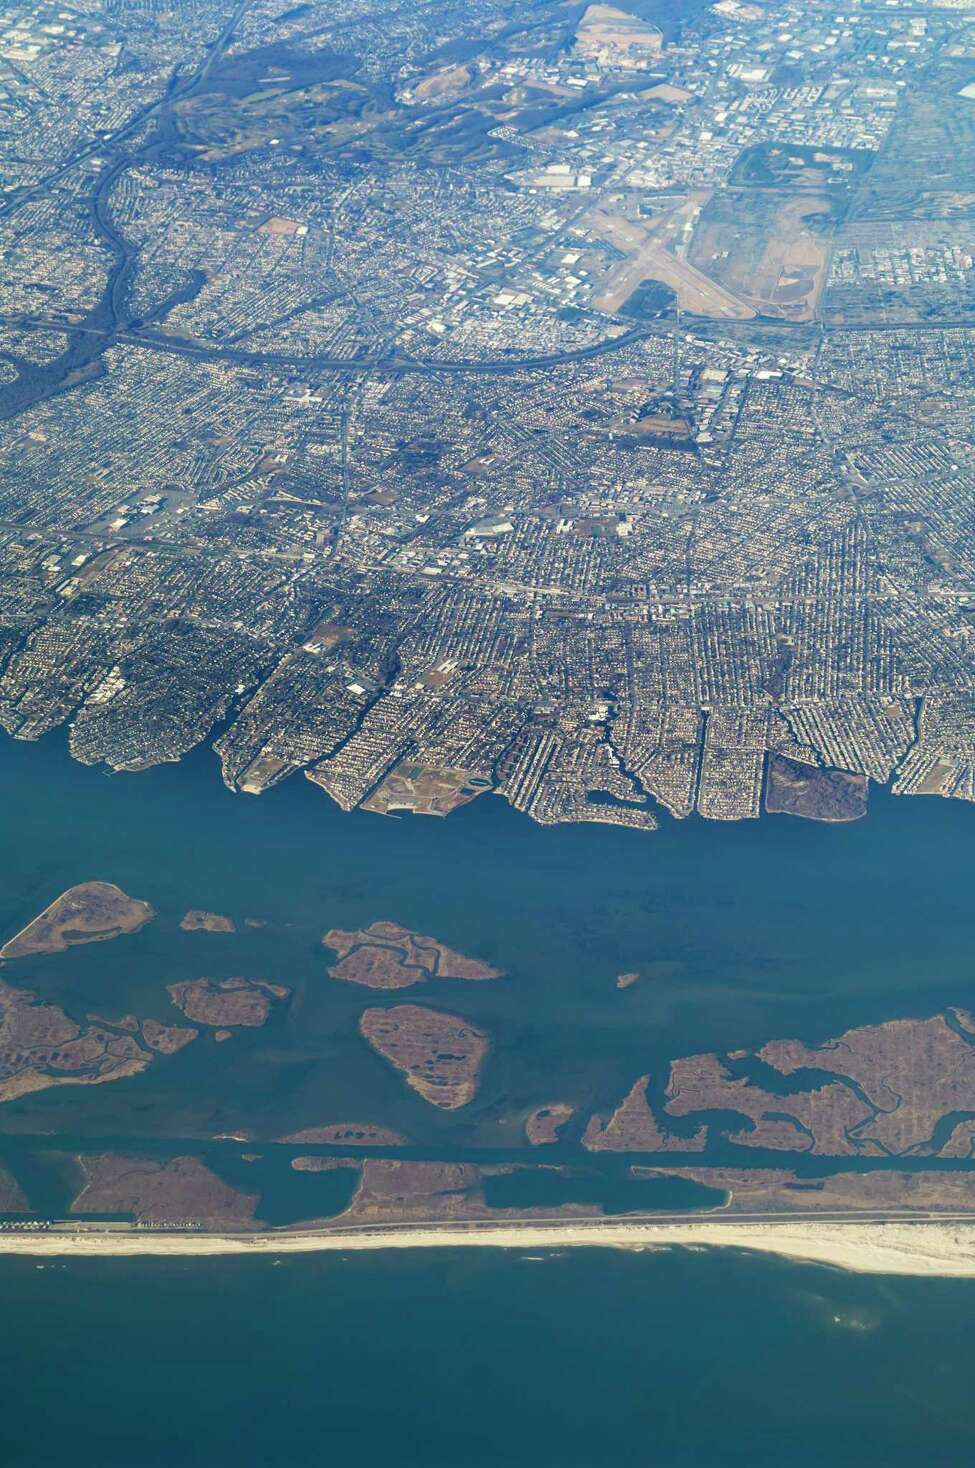 An aerial view of Republic Airport in the distance taken from the south coast of Long Island. (stockcam/Getty Images/iStockphoto)